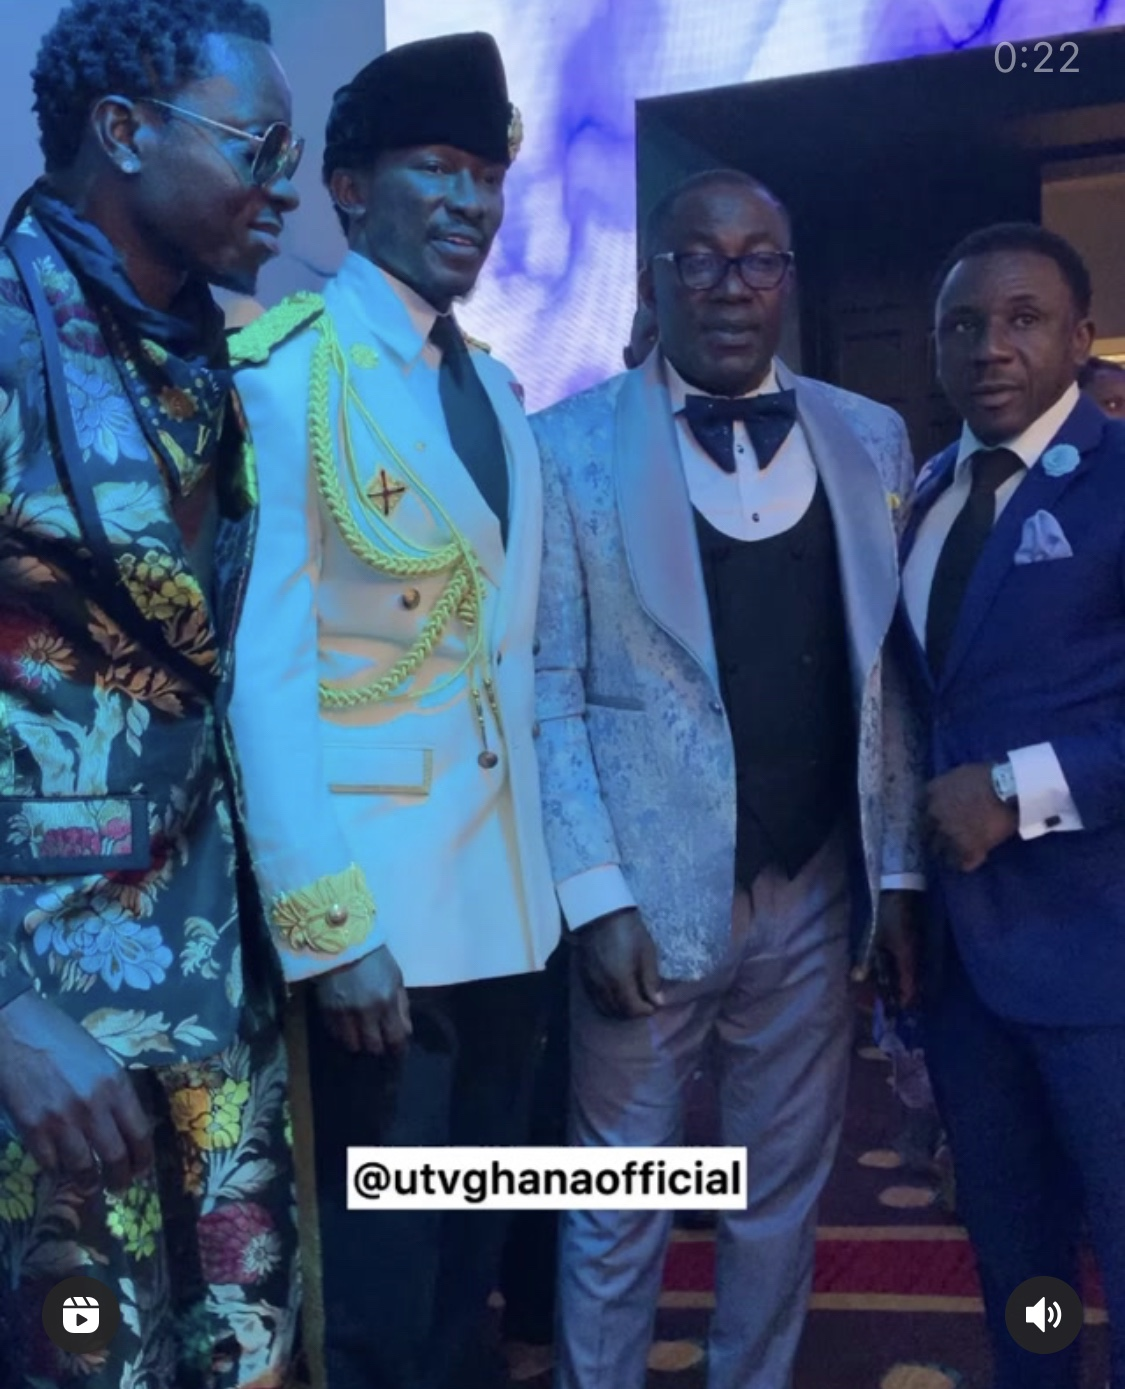 michael-blackson,-nana-kwame-bediako-and-more-attend-wedding-reception-of-cindy,-daughter-of-special-ice-ce.o,-ernest-ofori-sarpong